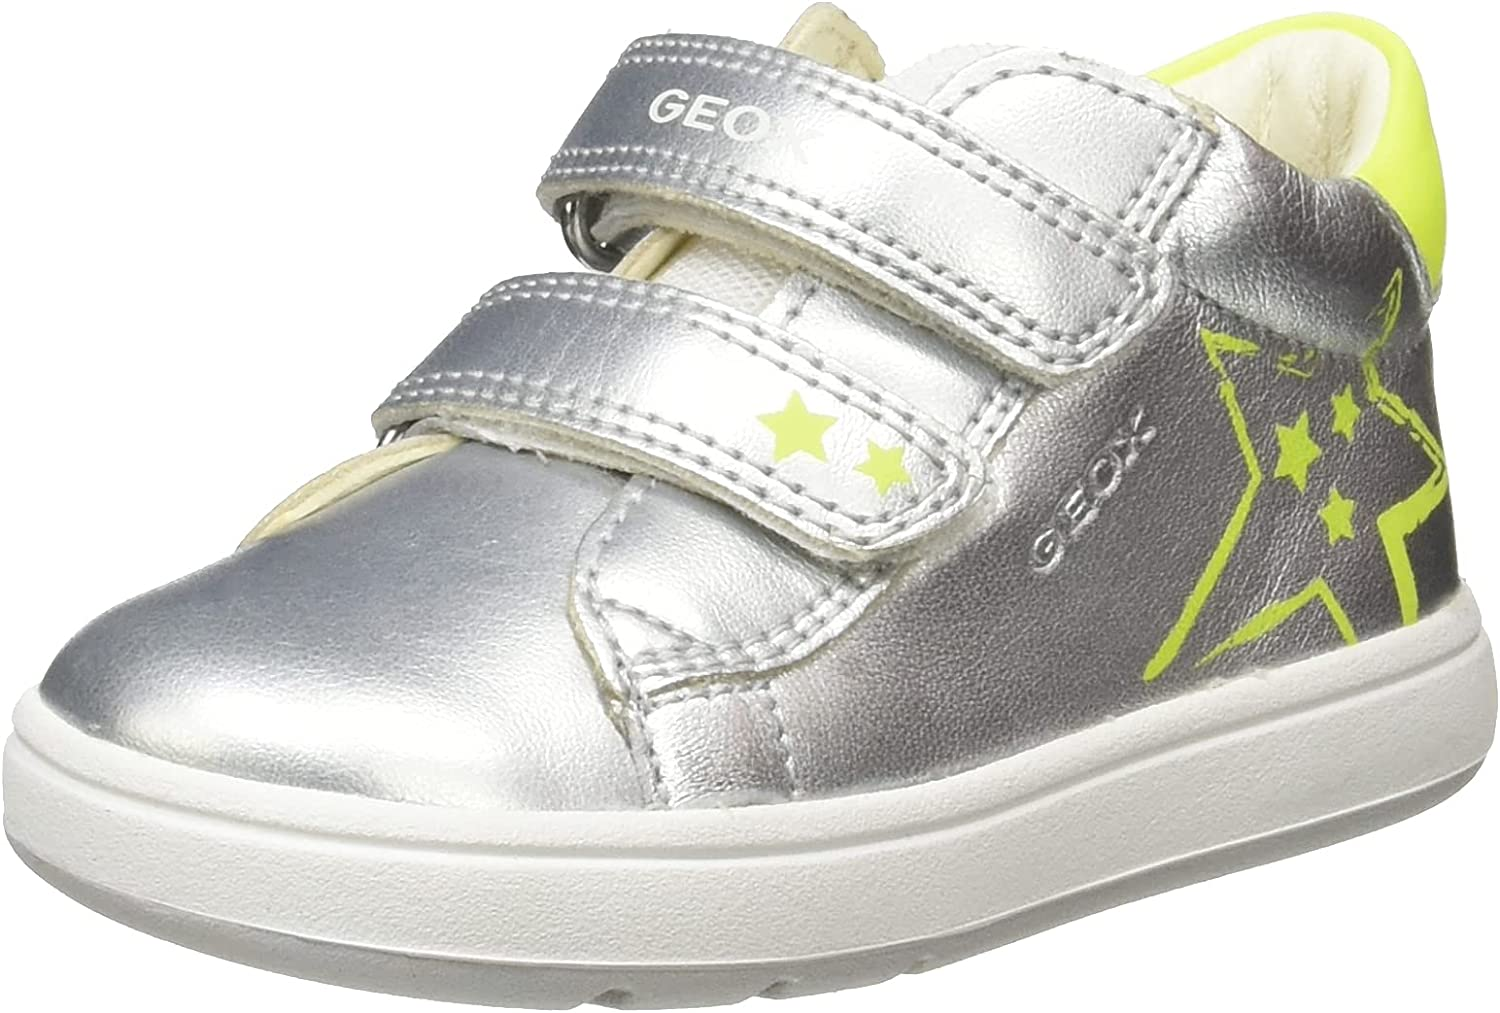 Geox - Infant/Toddler Girls' Biglia 4 First Steps Shoes